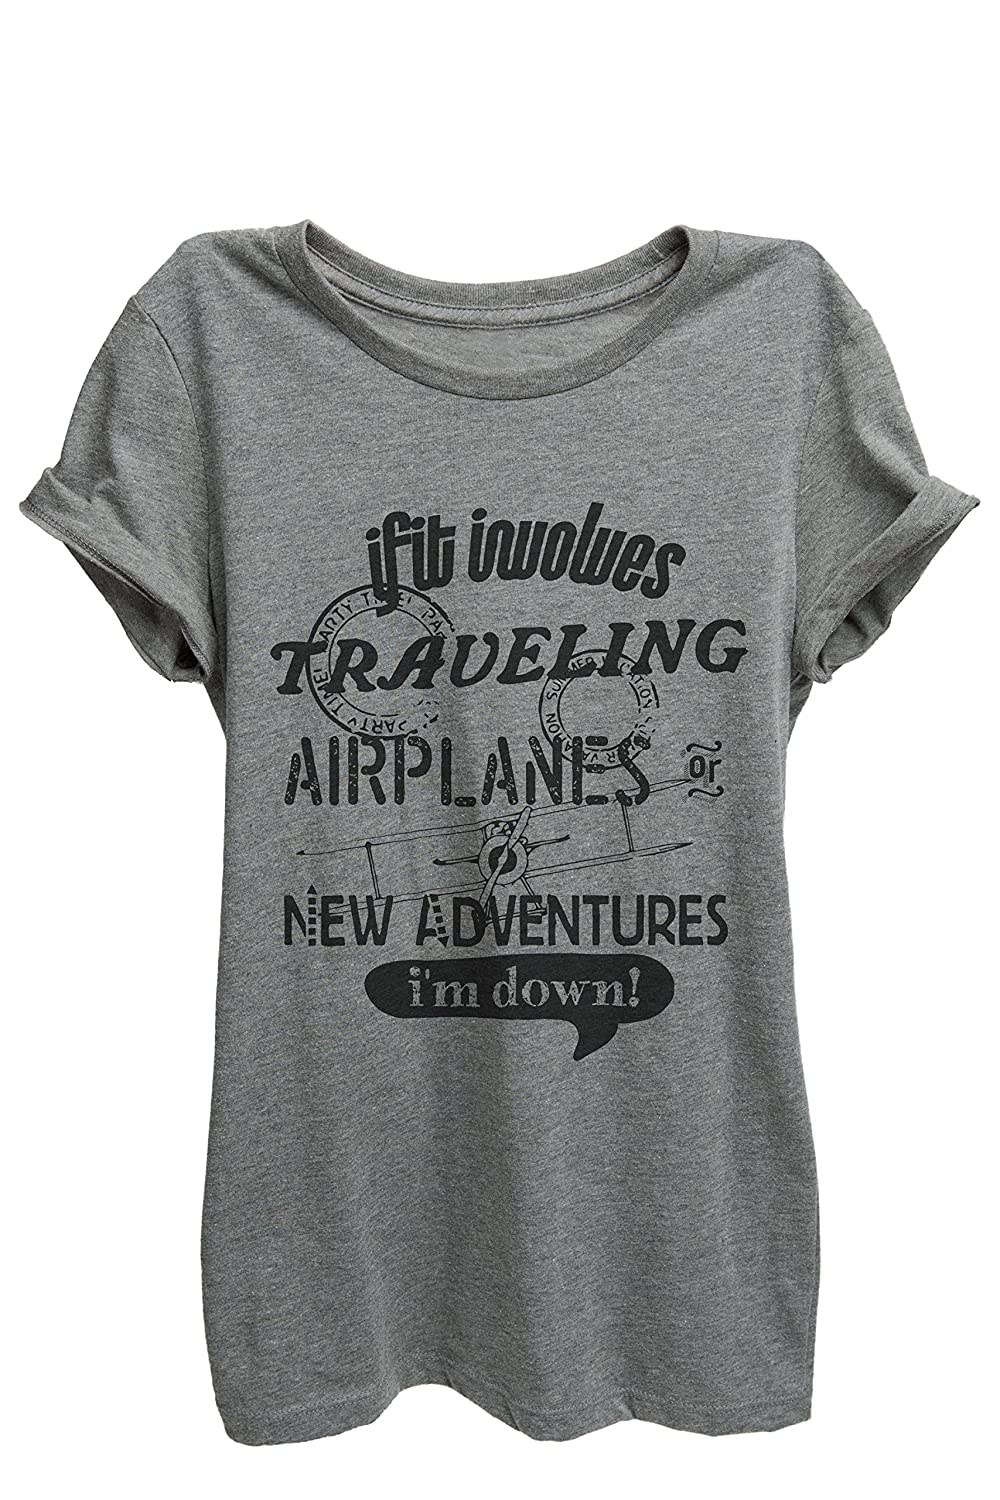 Thread Tank Traveling Airplanes Adventures Womens Relaxed T-Shirt Tee Heather Grey